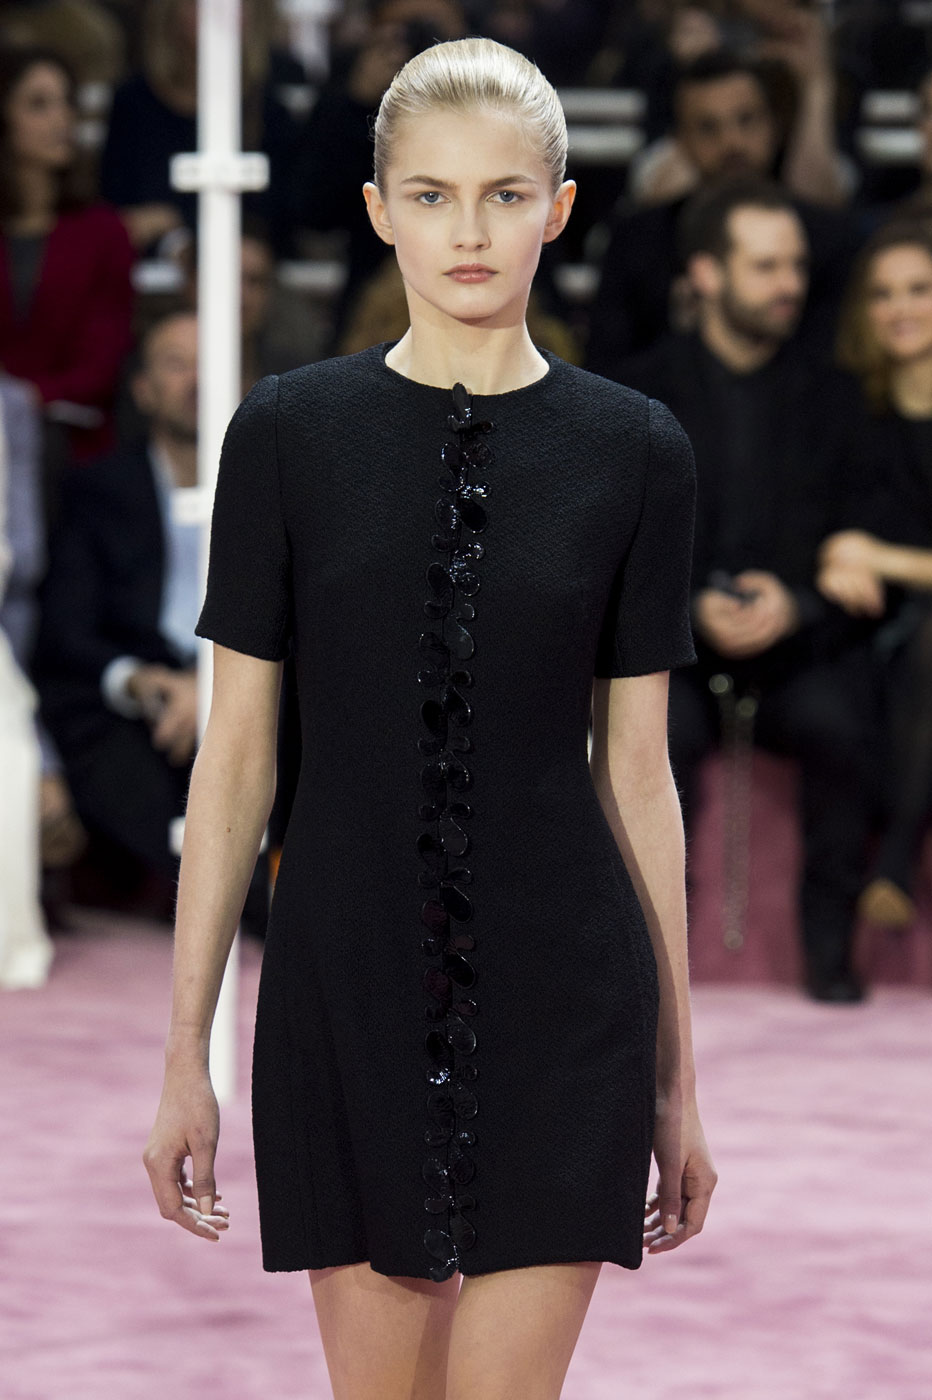 Christian-Dior-fashion-runway-show-haute-couture-paris-spring-summer-2015-the-impression-022